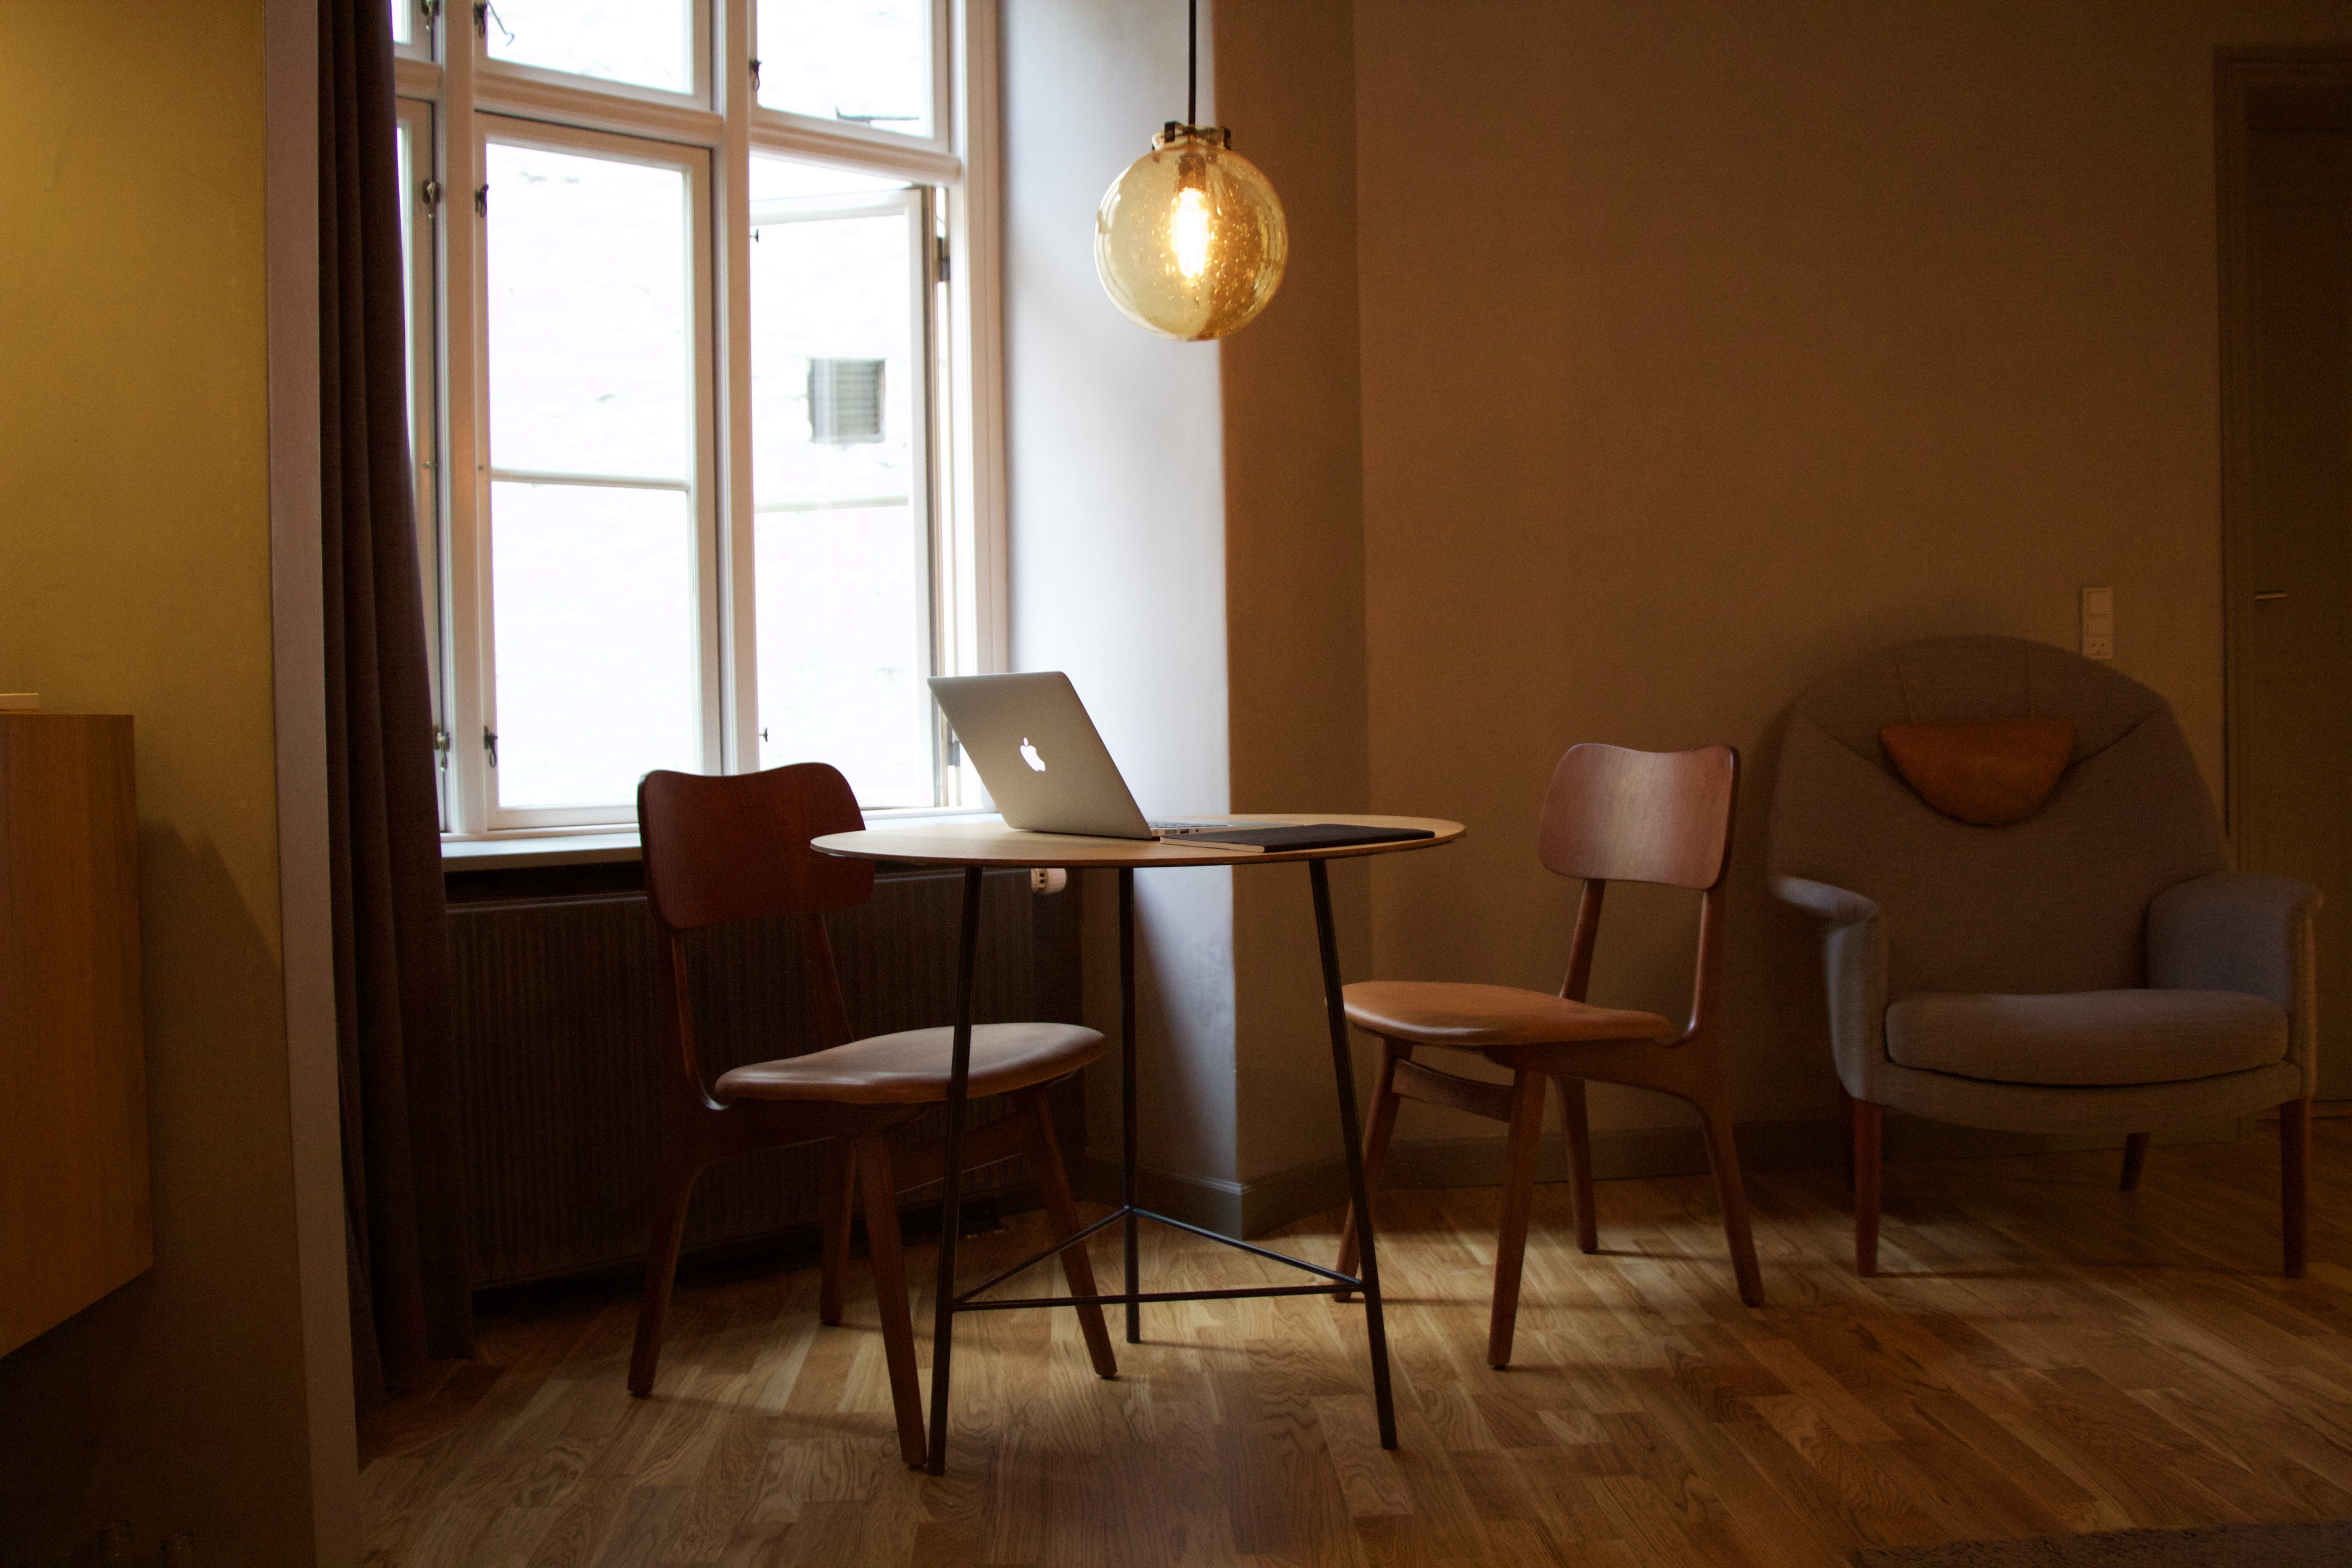 A MacBook on a small round table in a cosy living room